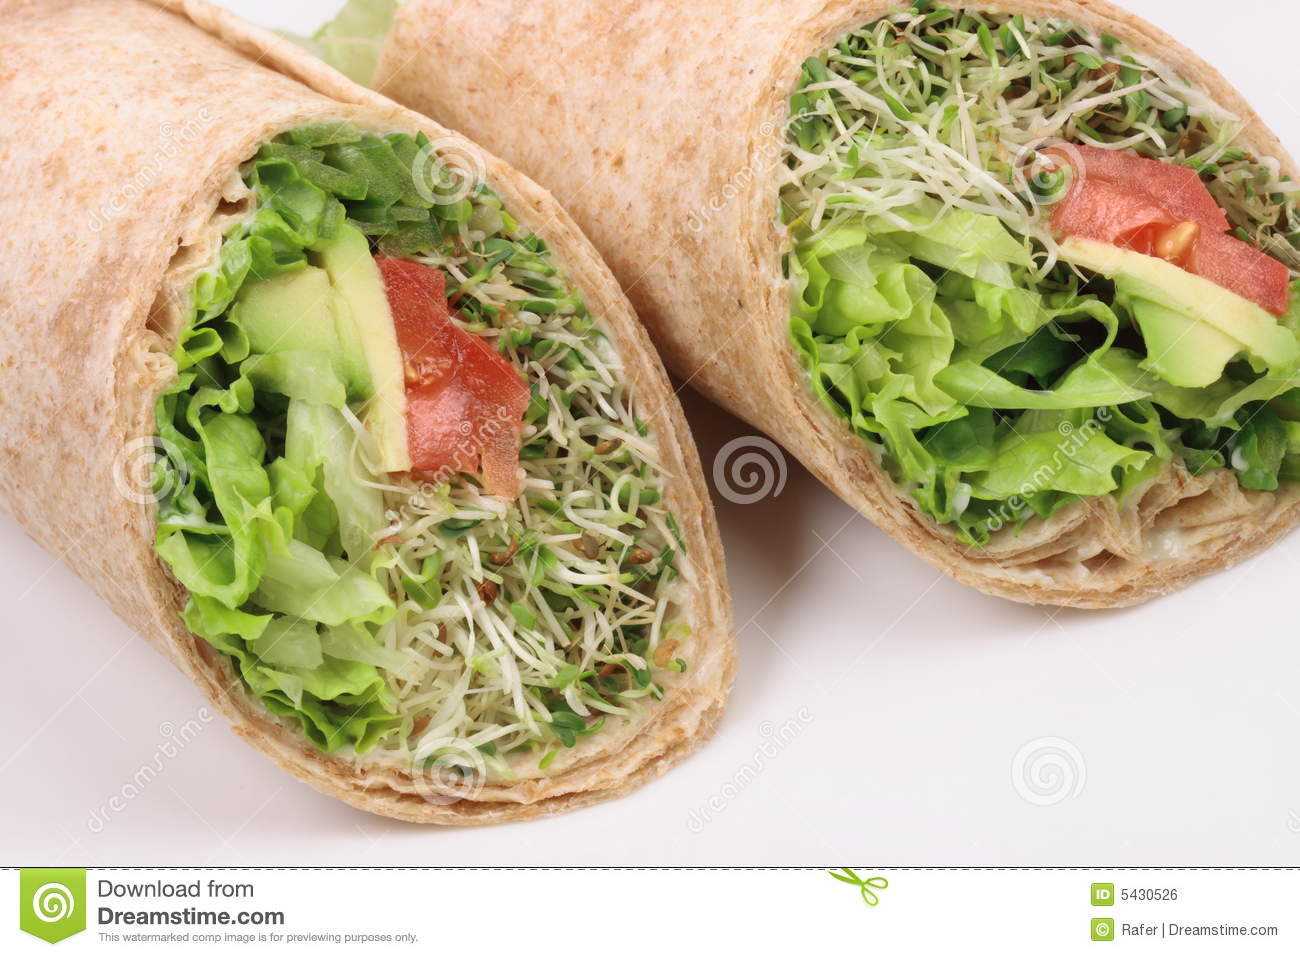 Vegan wraps special stock photo. Image of sandwich, cook - 5430526